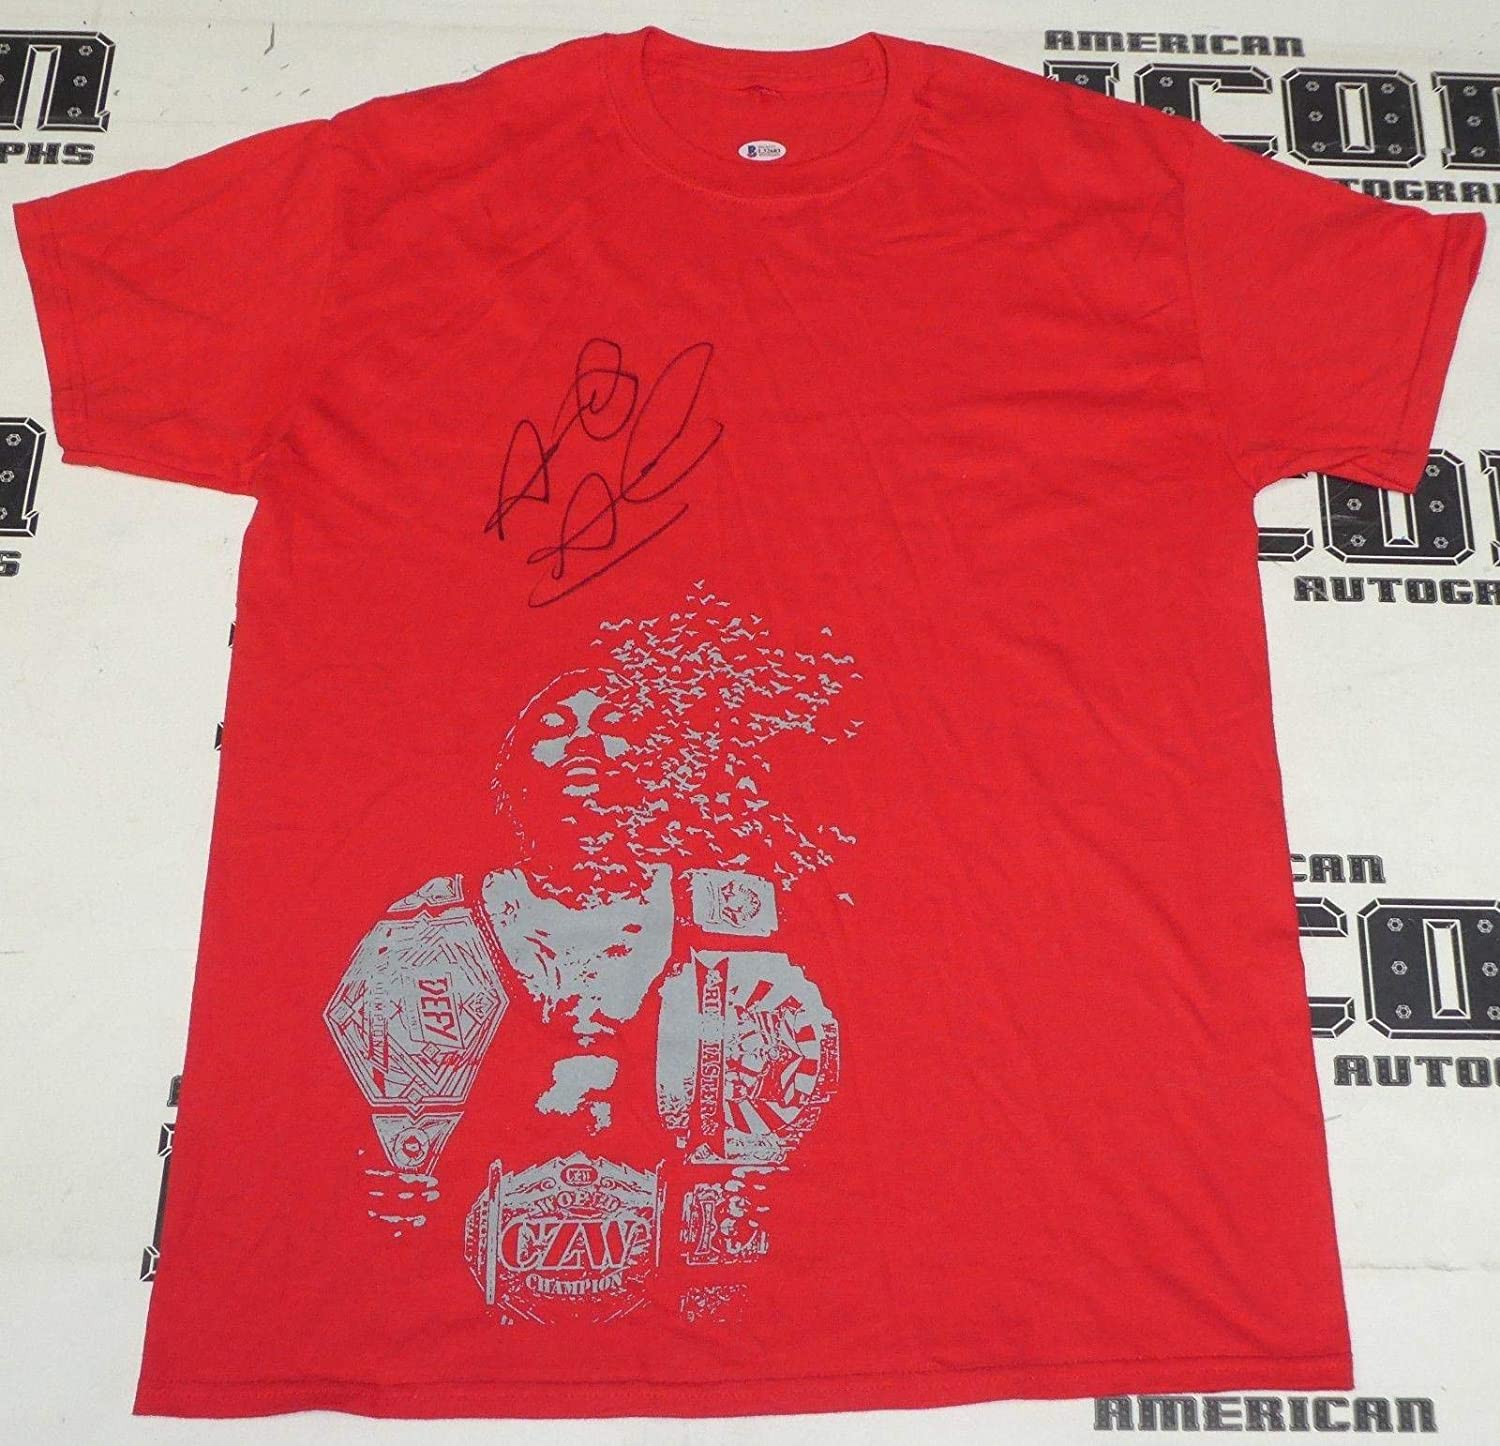 Shane Strickland Signed Shirt BAS Beckett COA Lucha Underground WWE Autograph 83 - Autographed Wrestling Miscellaneous Items